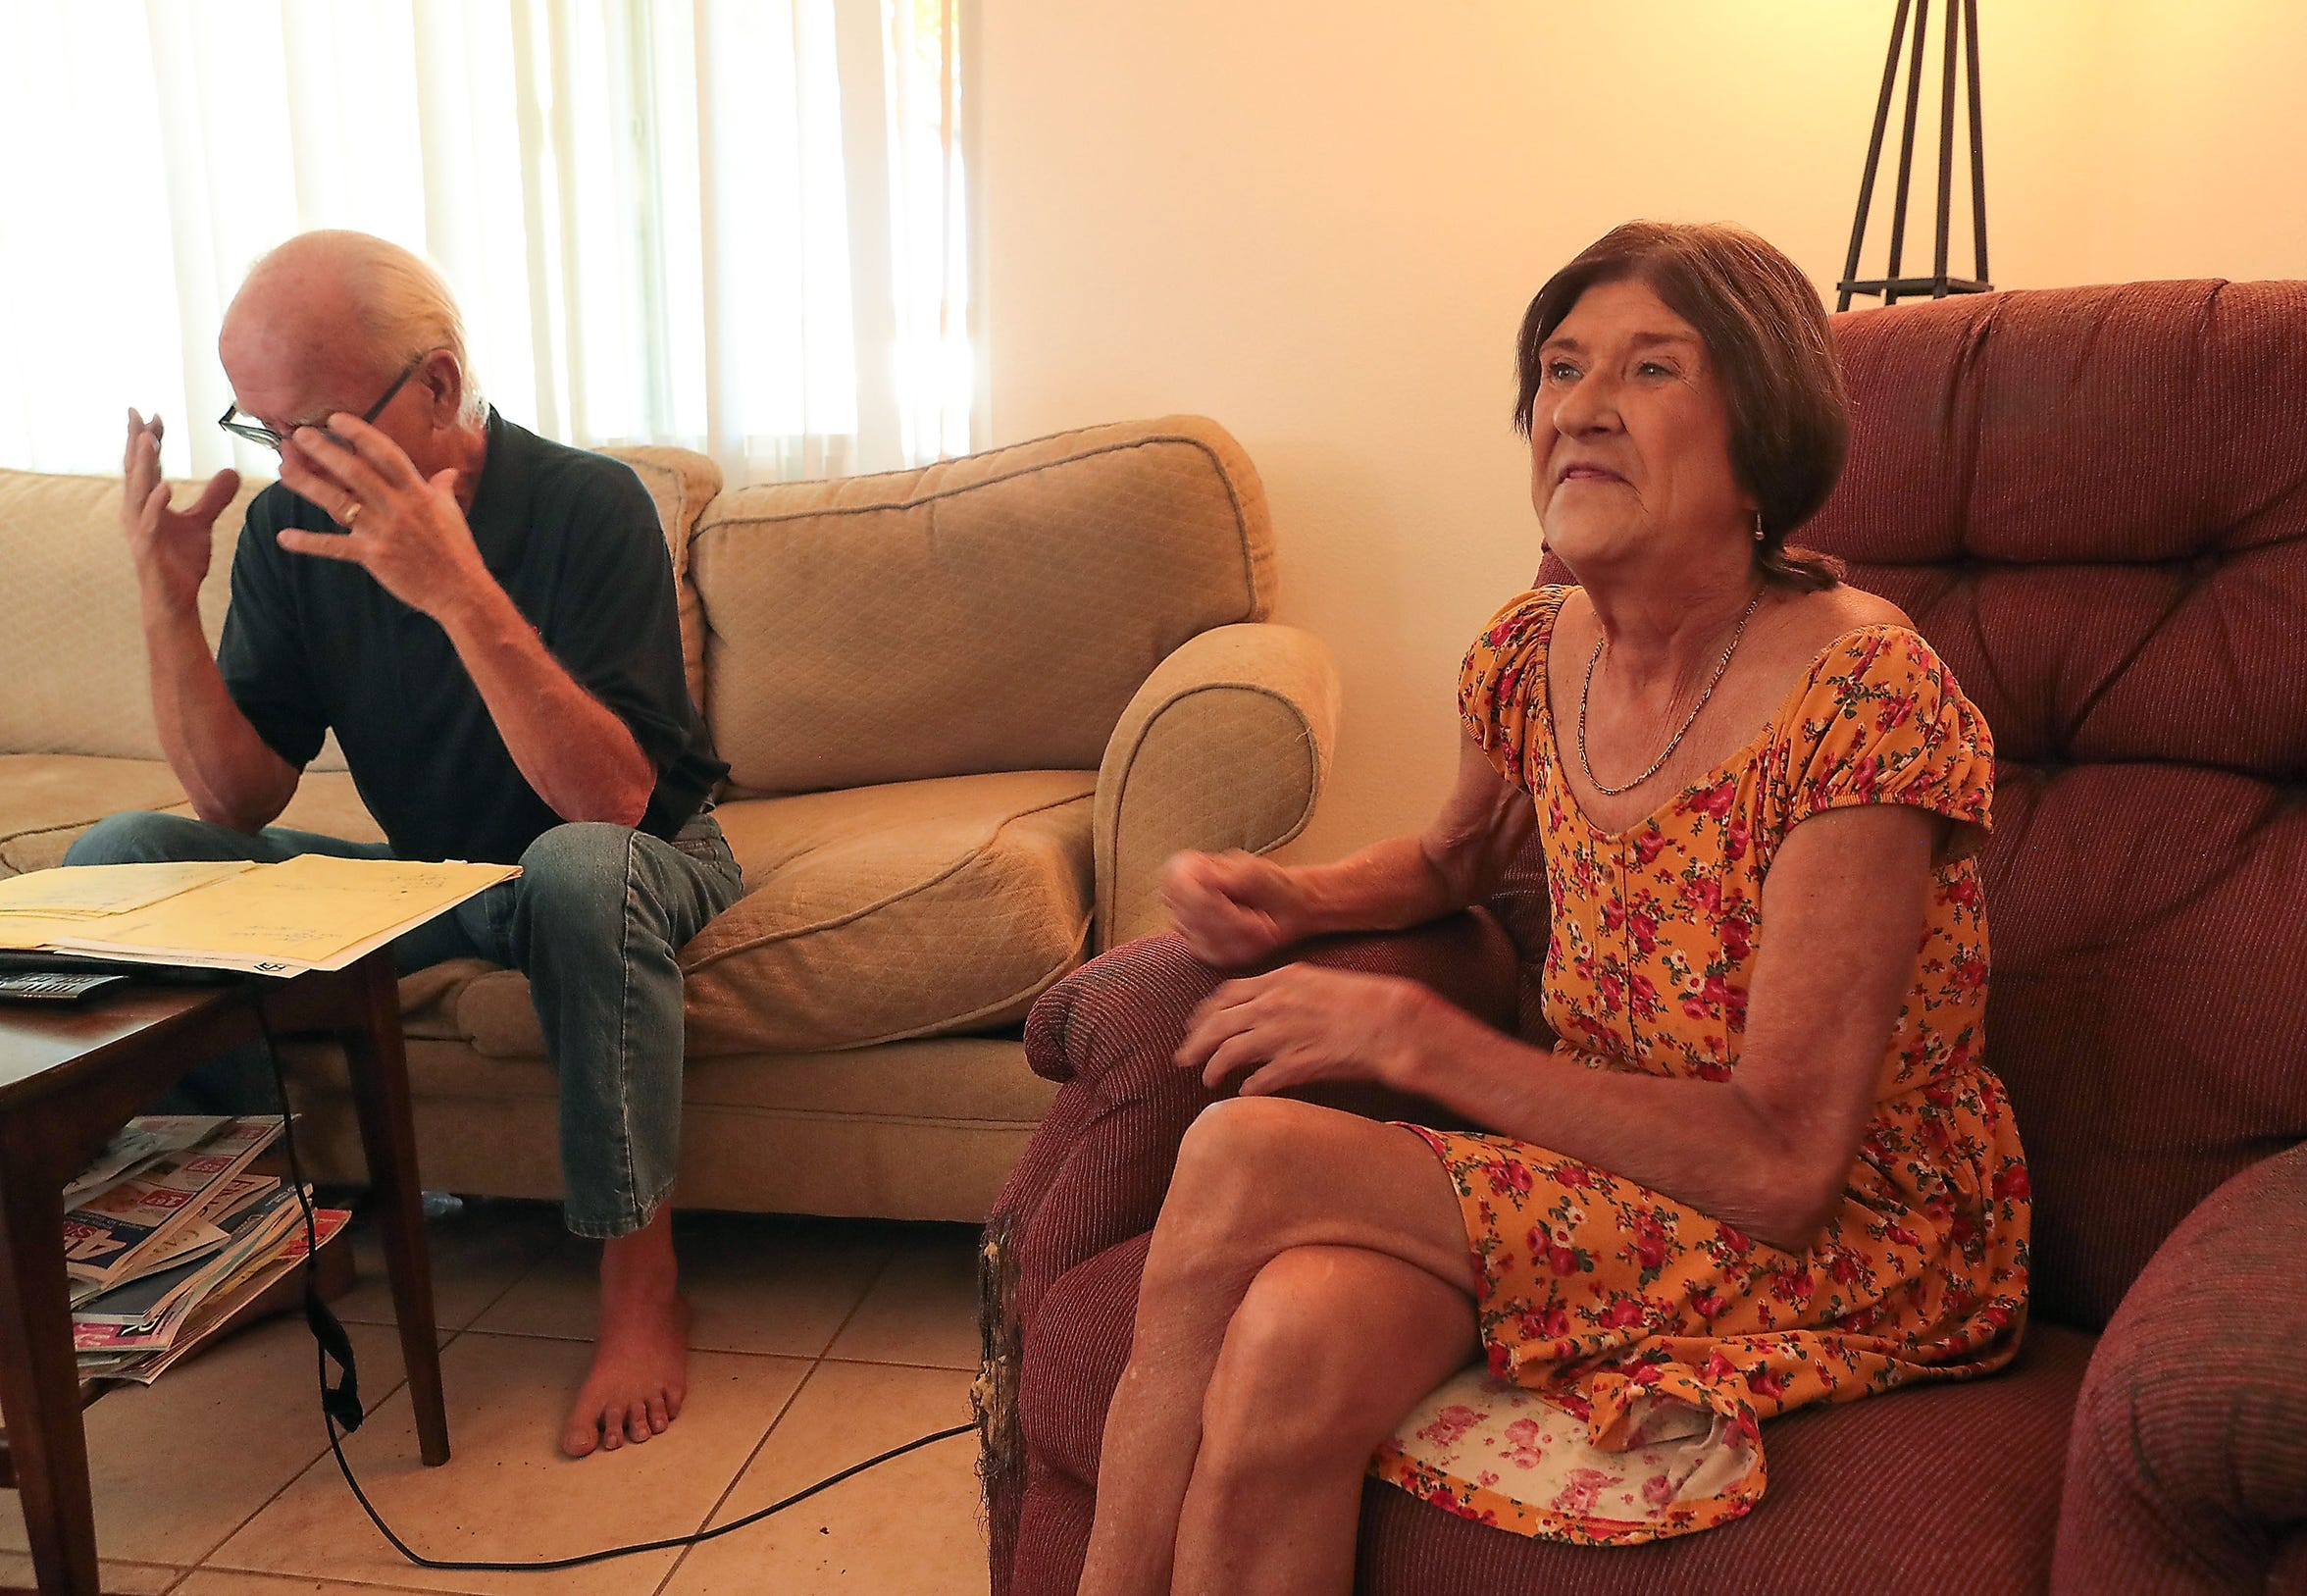 Ron and Nancy Moore recall being homeless in the past in their current home in Joshua Tree, Calif., August 29, 2019.